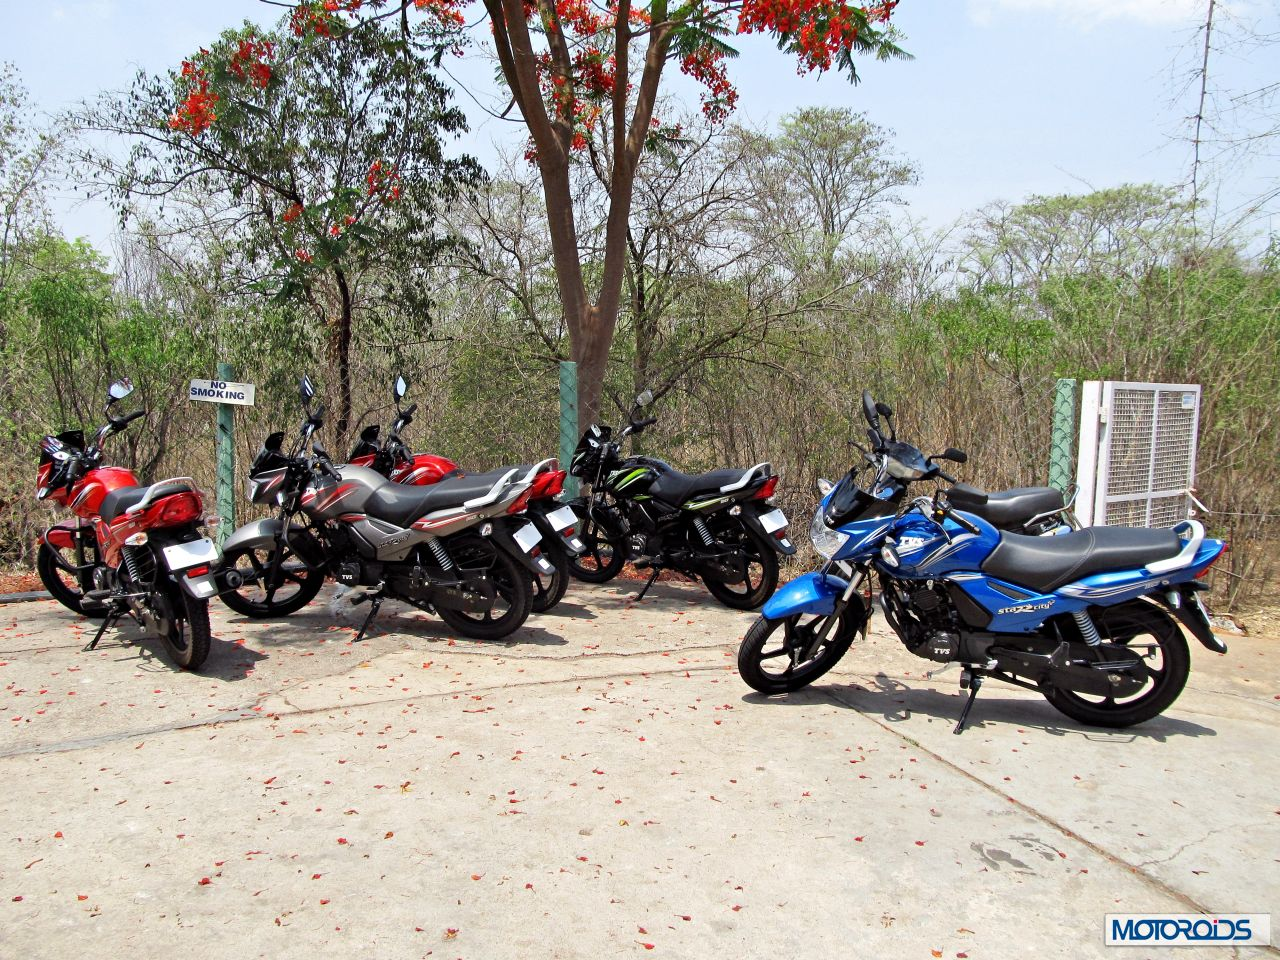 Tvs Star City Plus Review Images And Specs Honed For The